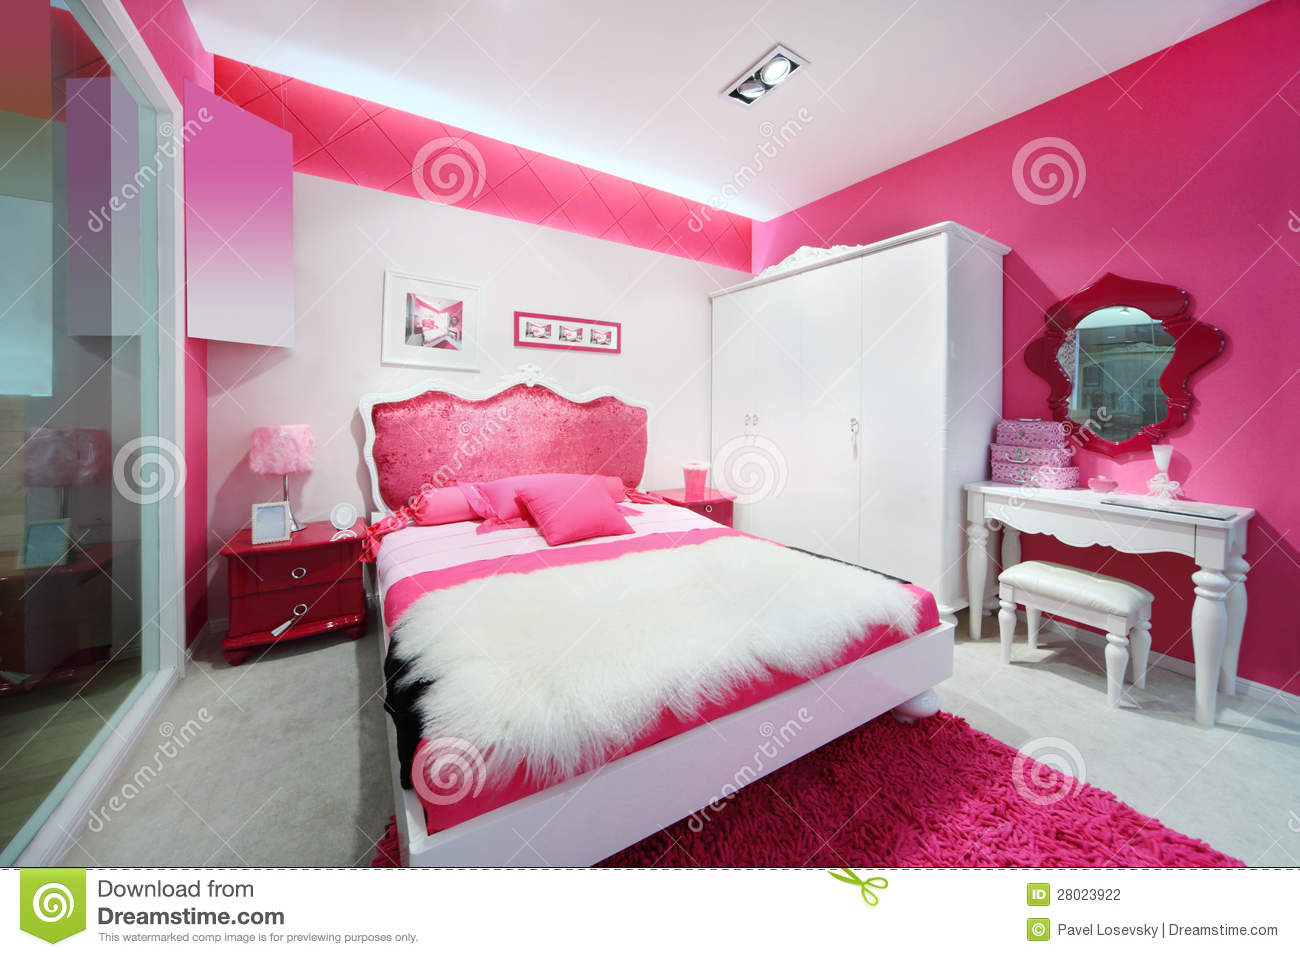 stilvolles rosa wei es sch nes schlafzimmer stockfotografie bild 28023922. Black Bedroom Furniture Sets. Home Design Ideas